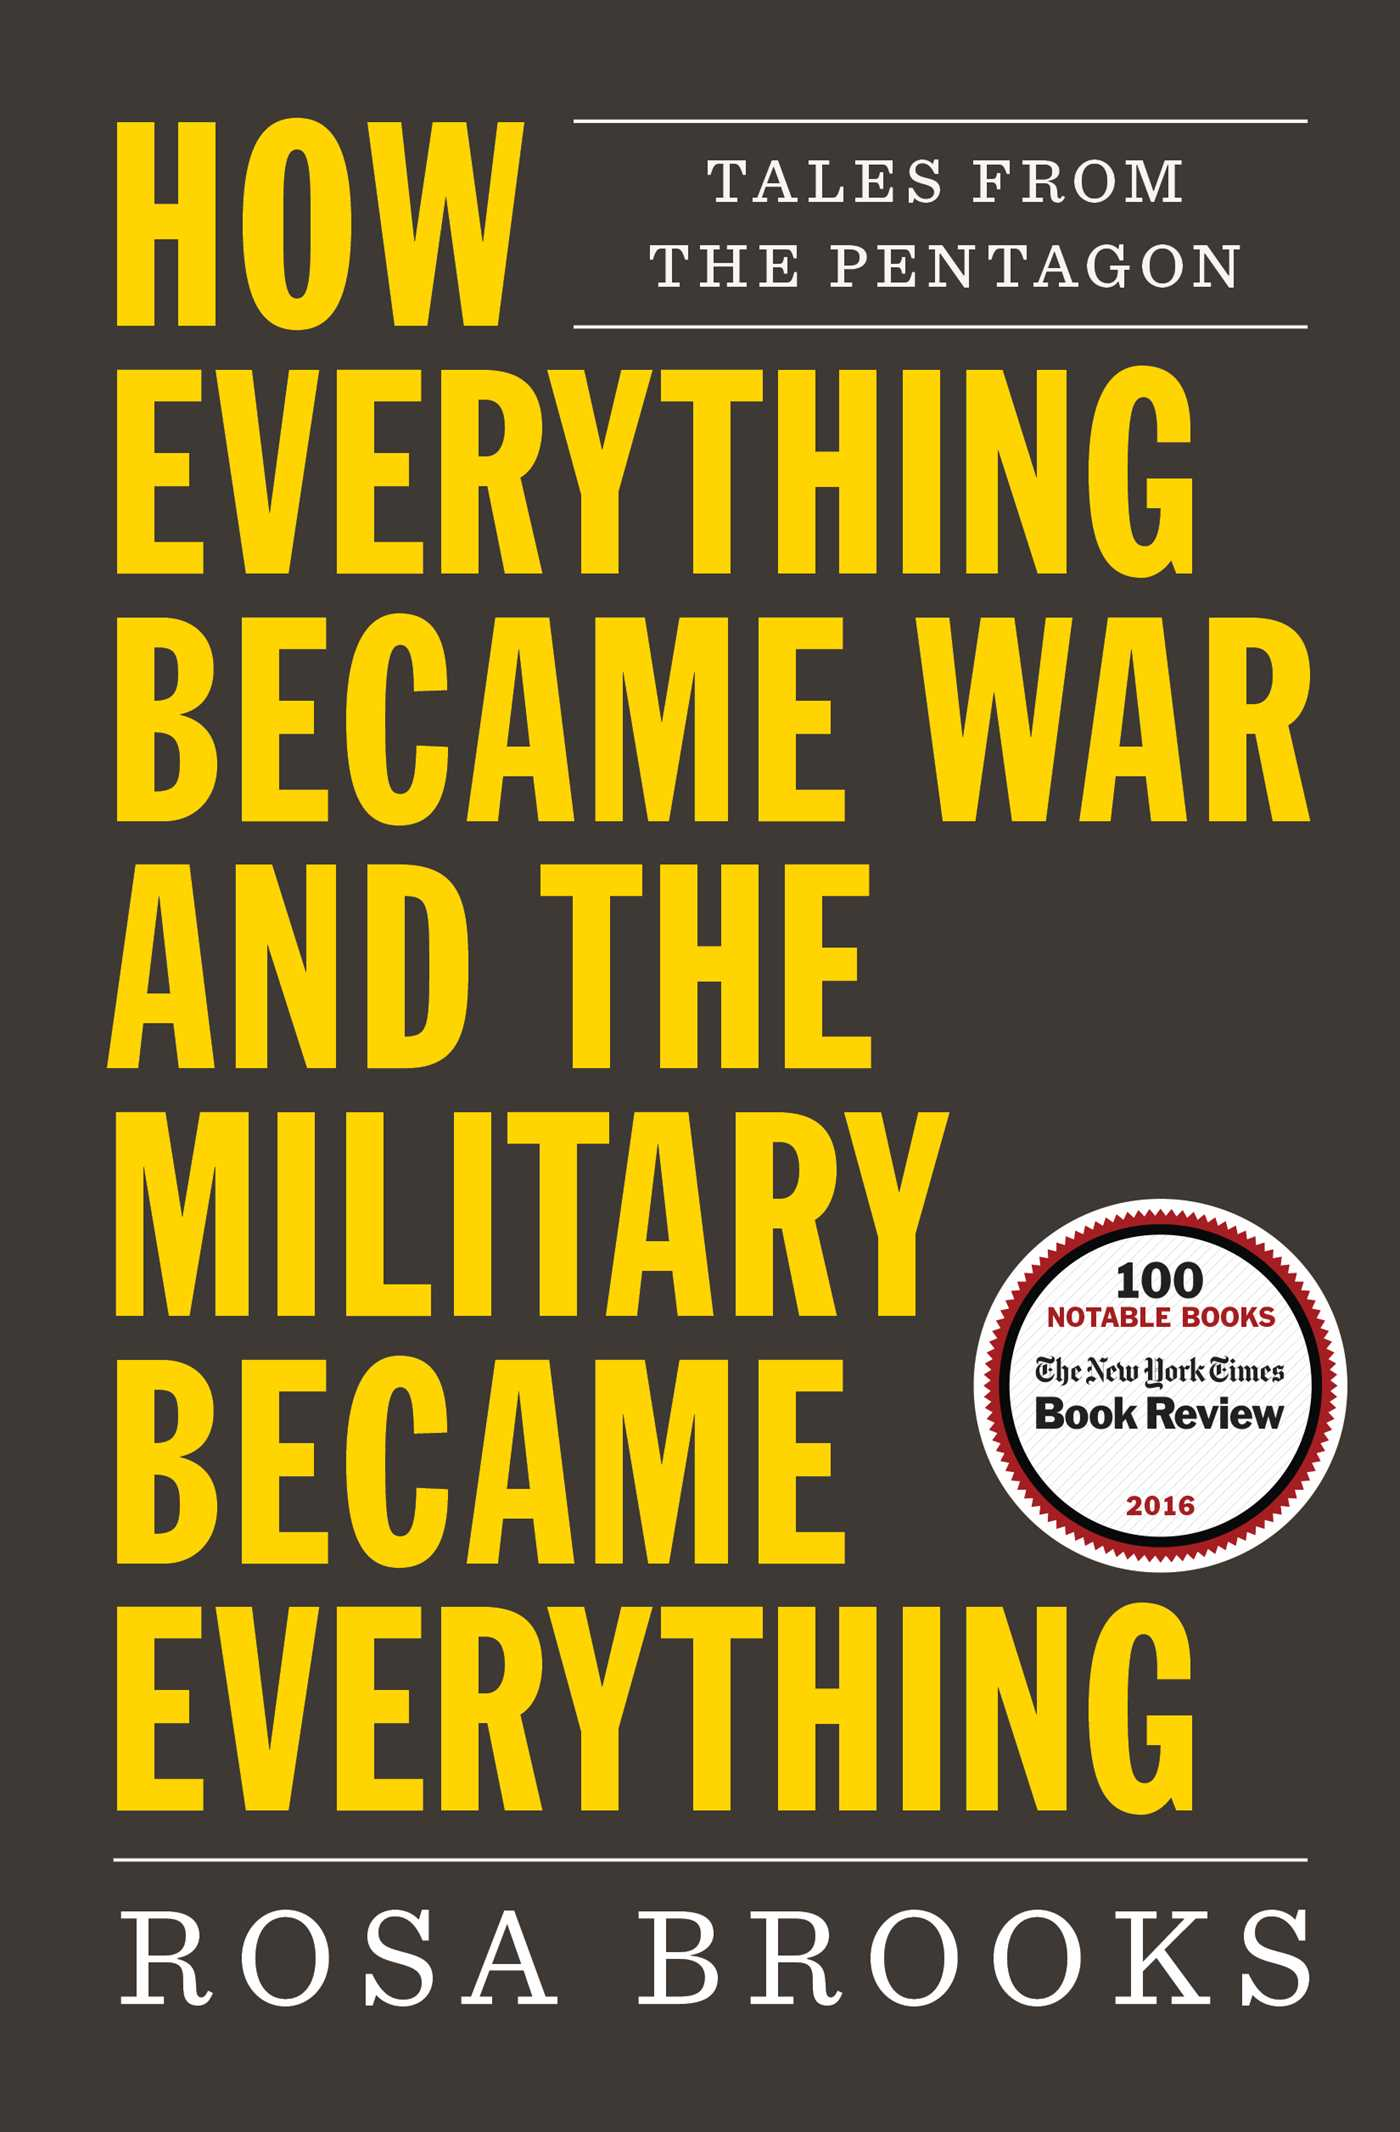 How Everything Became War and the Military Became Everything Tales from the Pentagon